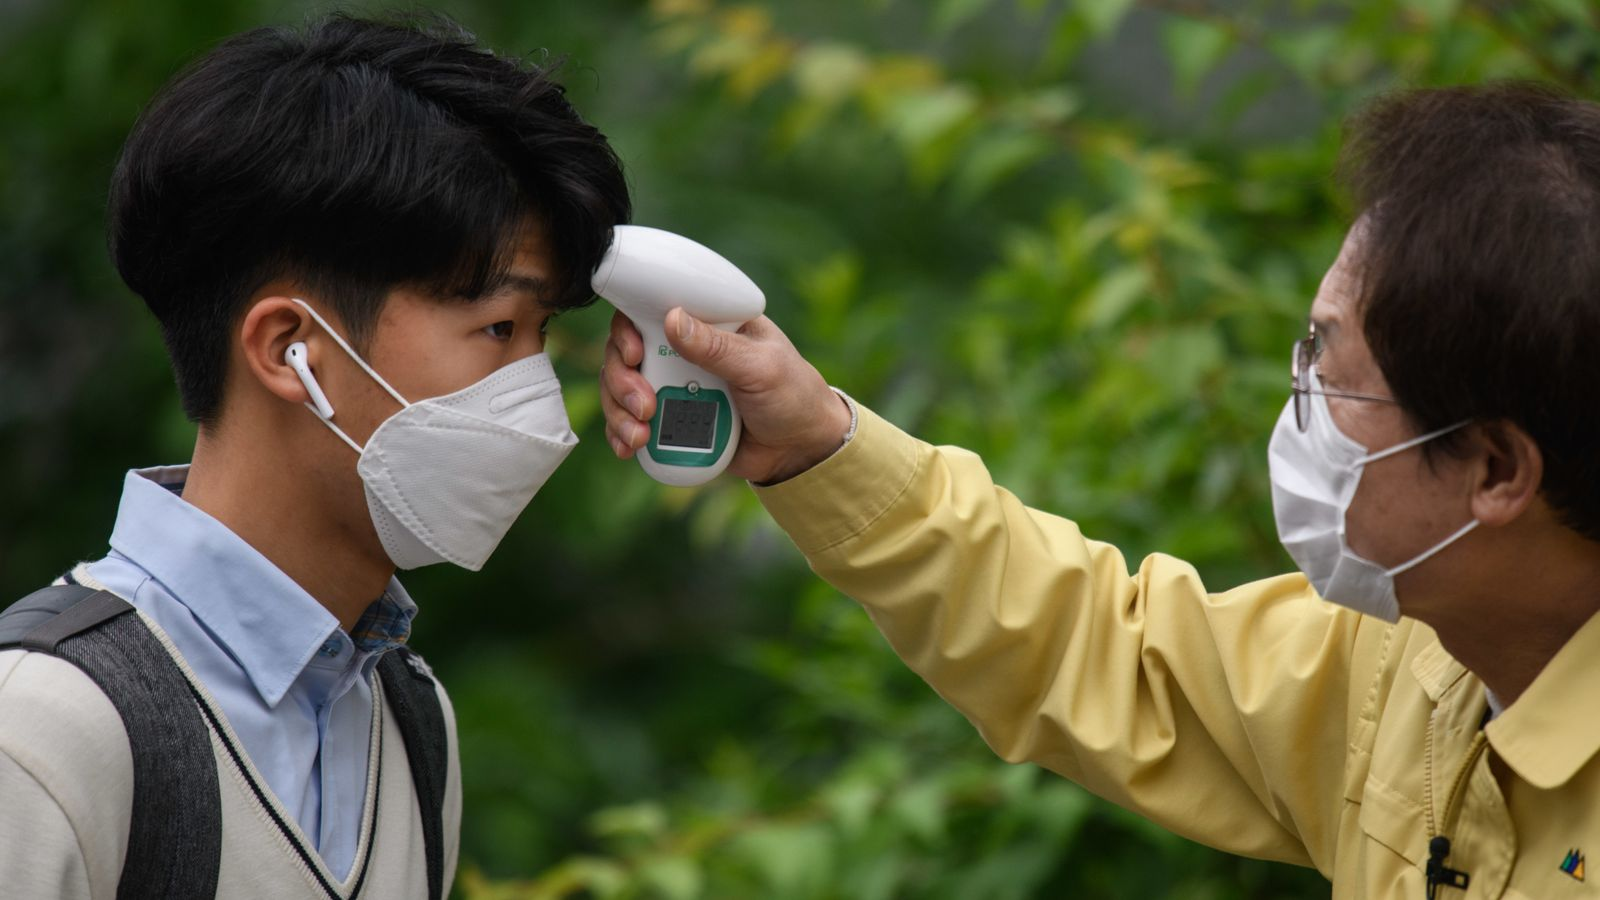 South Korea forced to close schools again after spike in new coronavirus cases